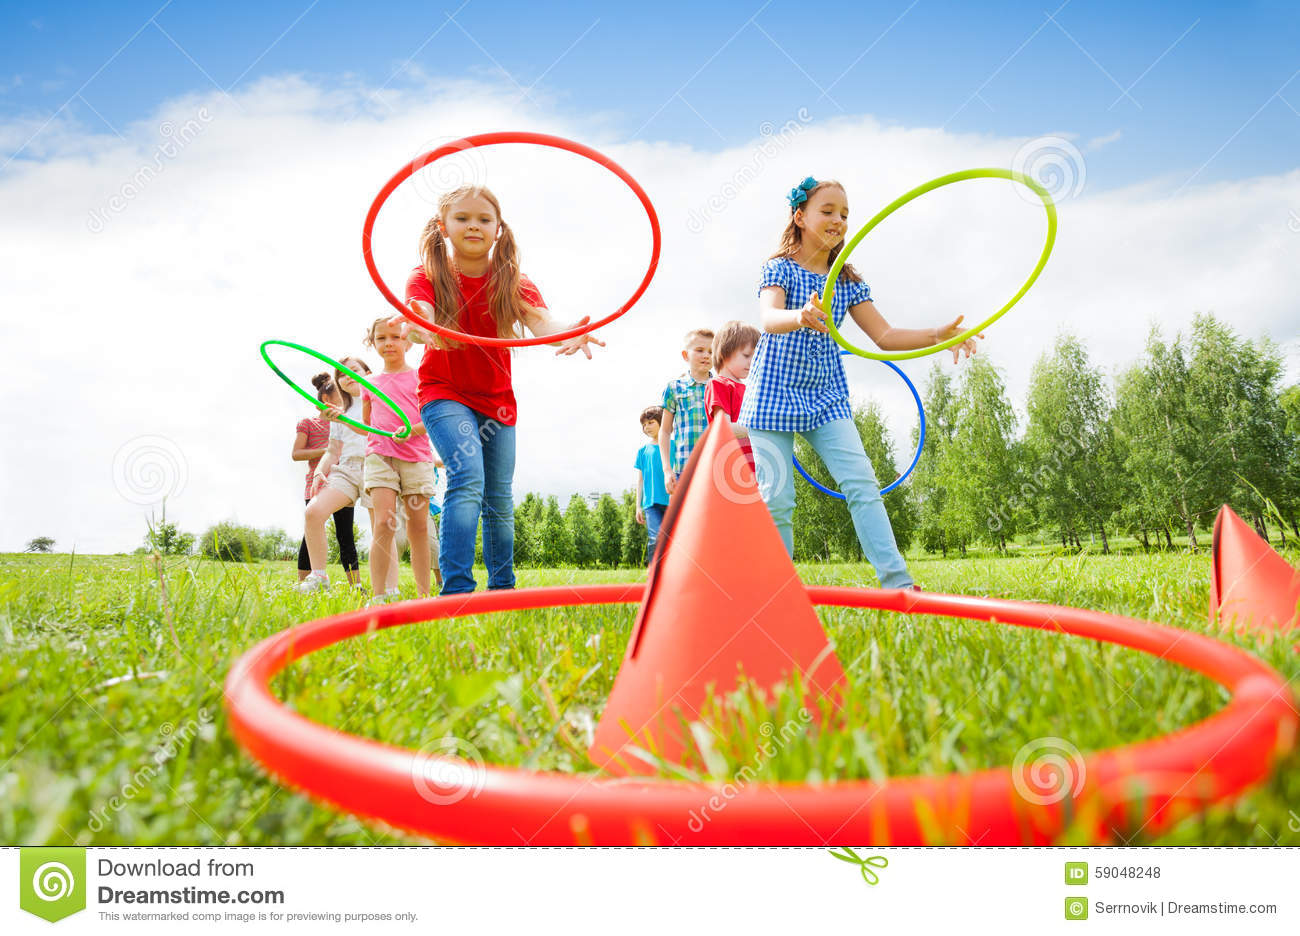 kids throw colorful hoops on cones while competing stock. Black Bedroom Furniture Sets. Home Design Ideas